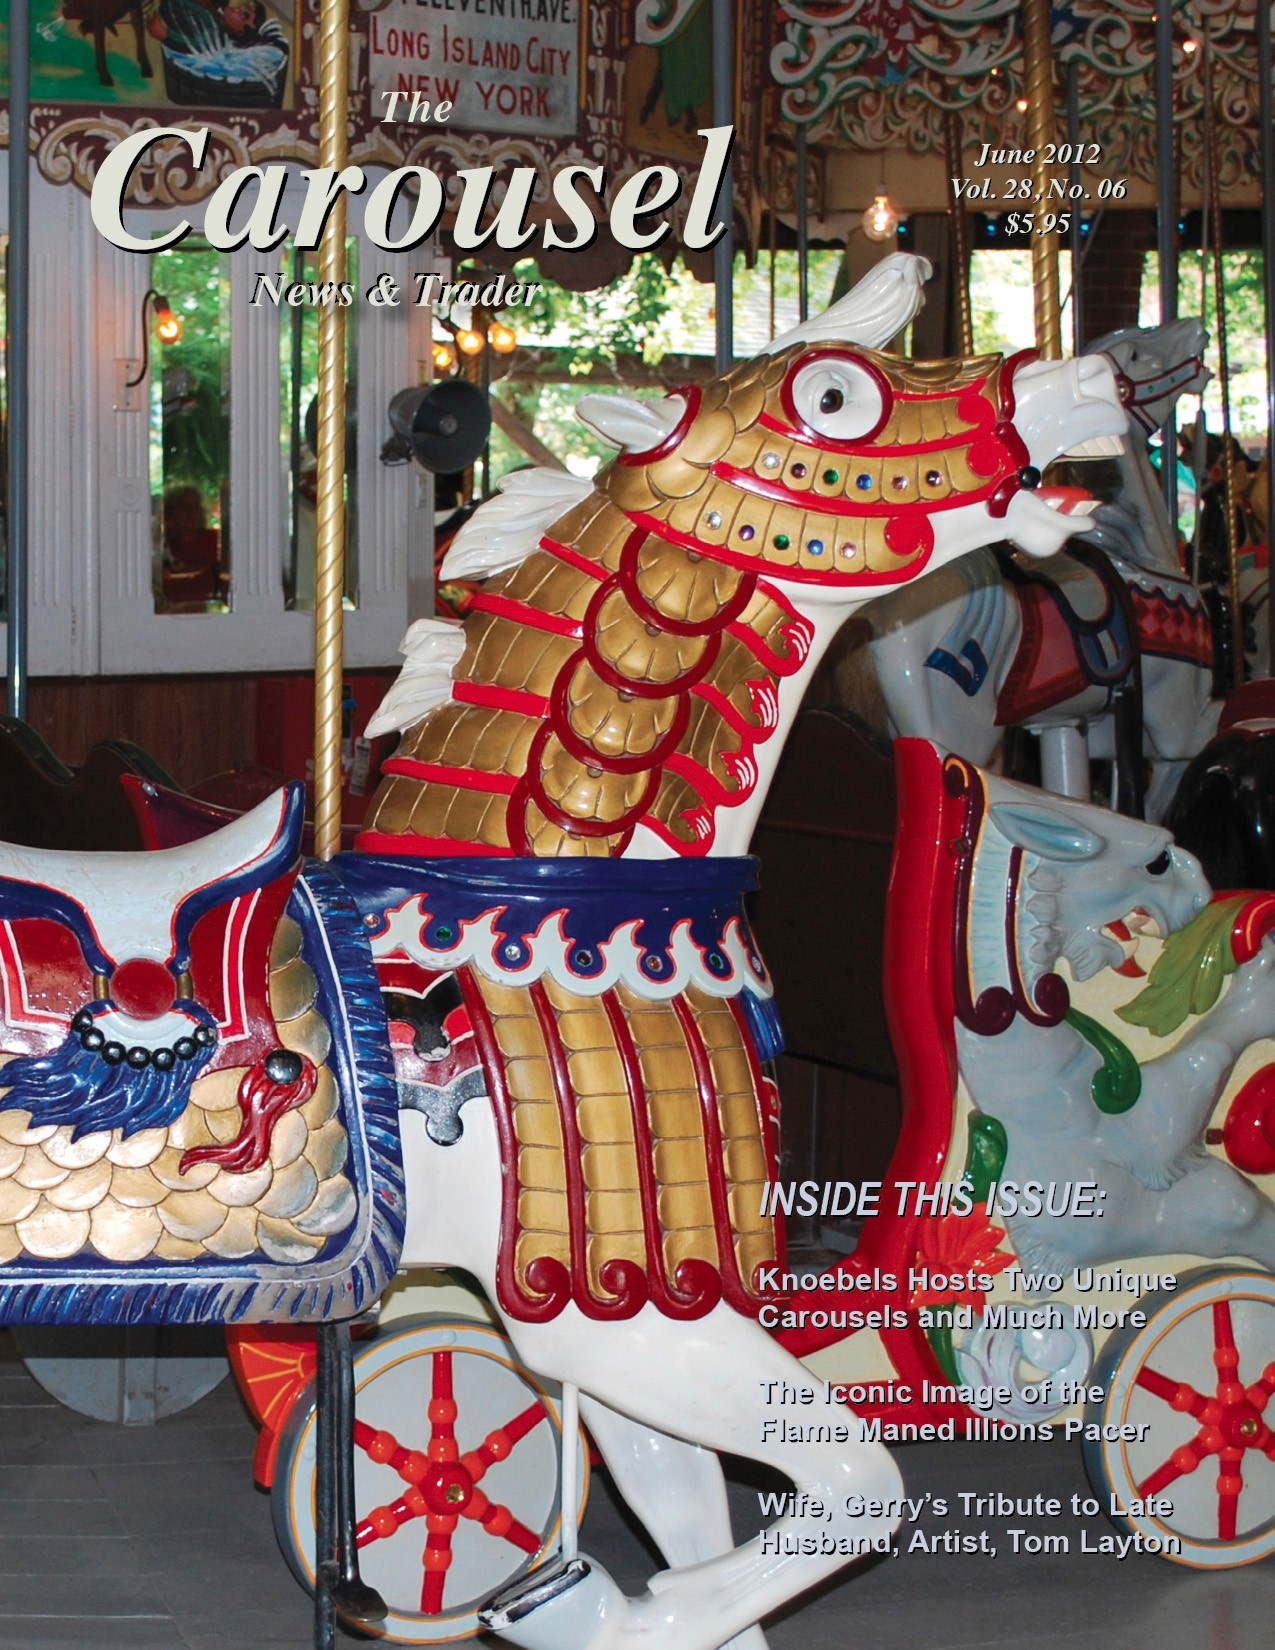 Carousel-news-cover-6-Knoebels-Grove-Grand-Carousel-Horse-June-2012